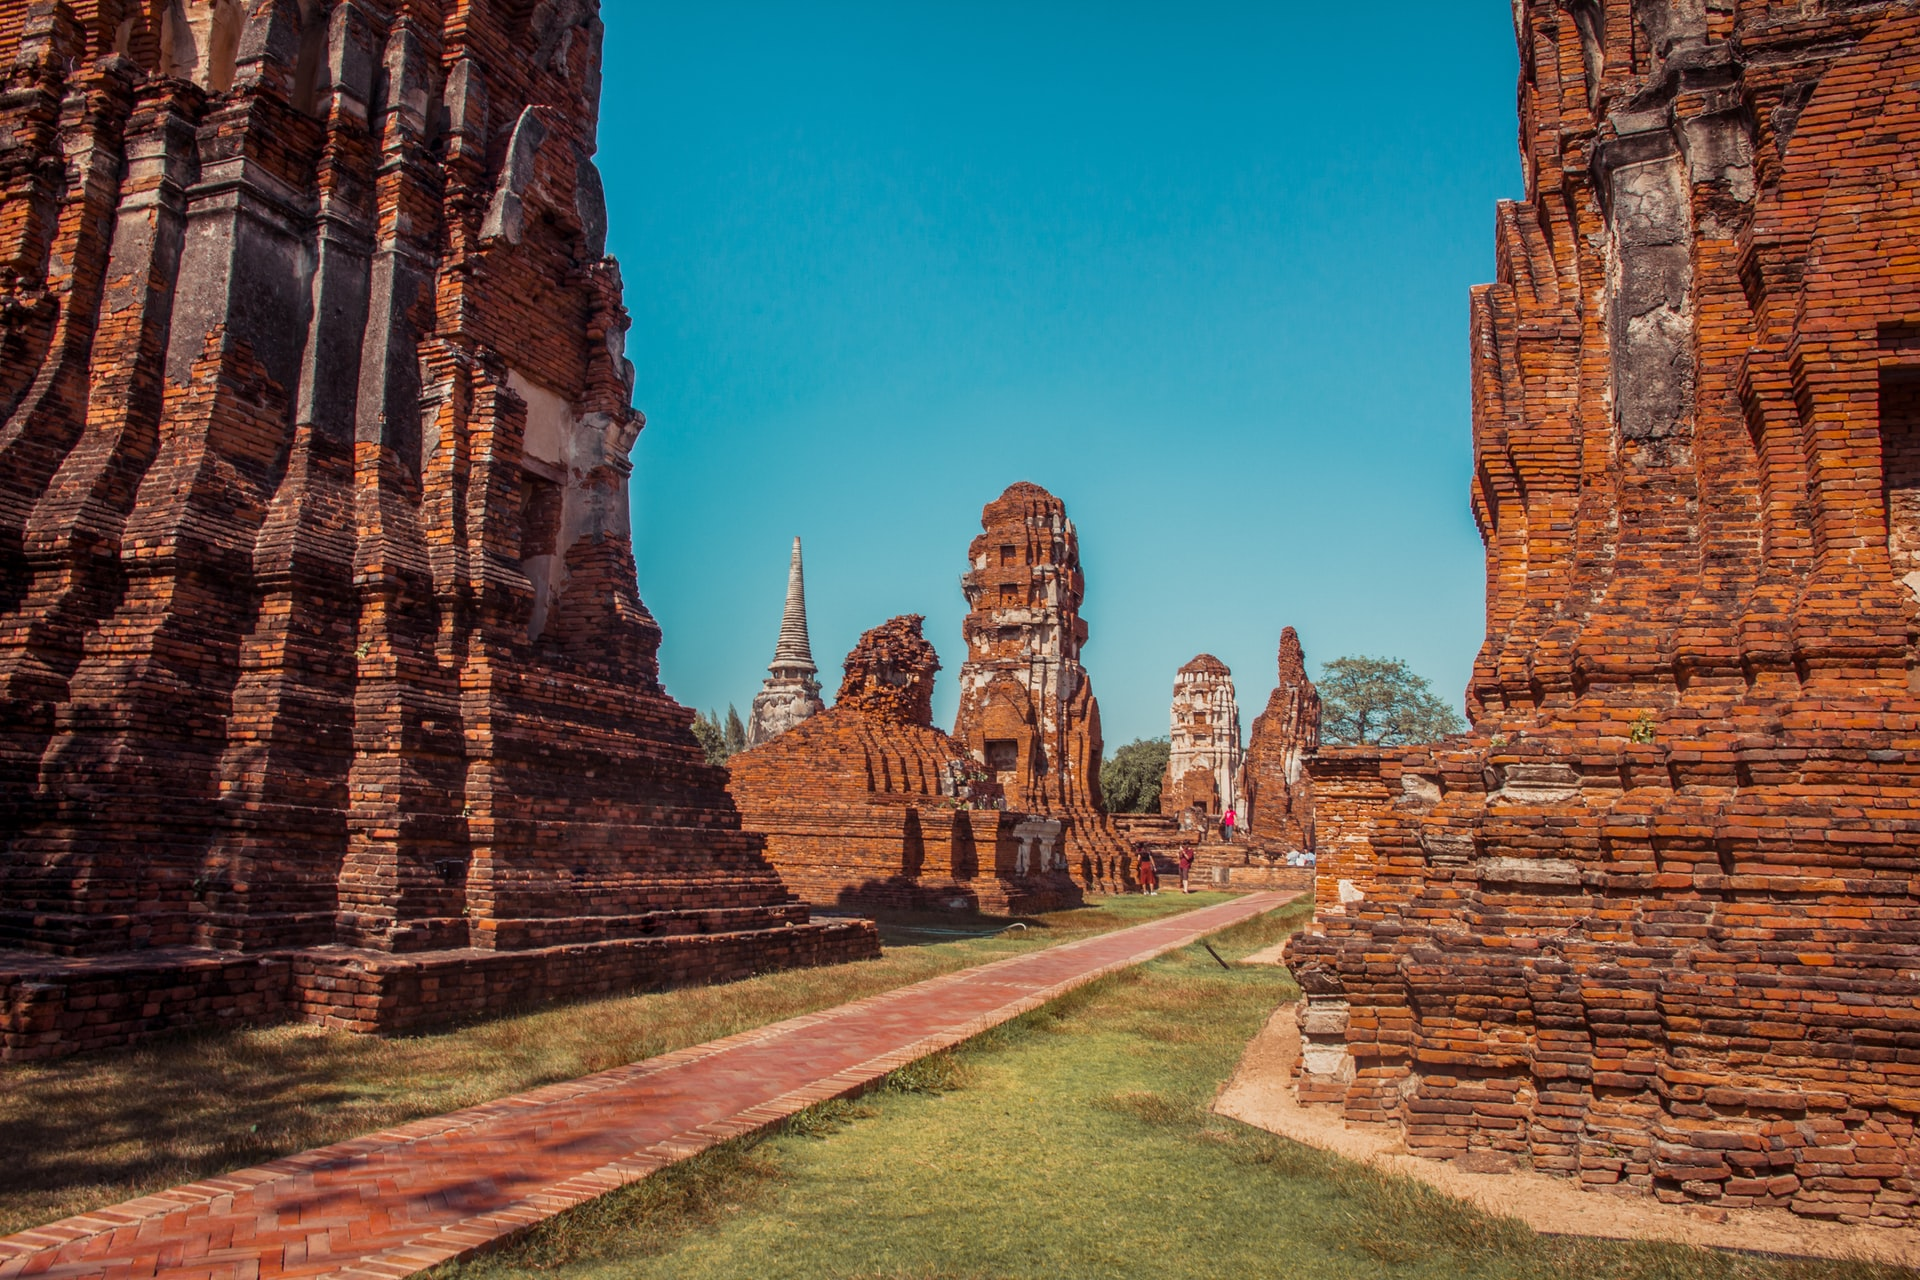 Ancient temple ruins in Ayutthaya, Thailand